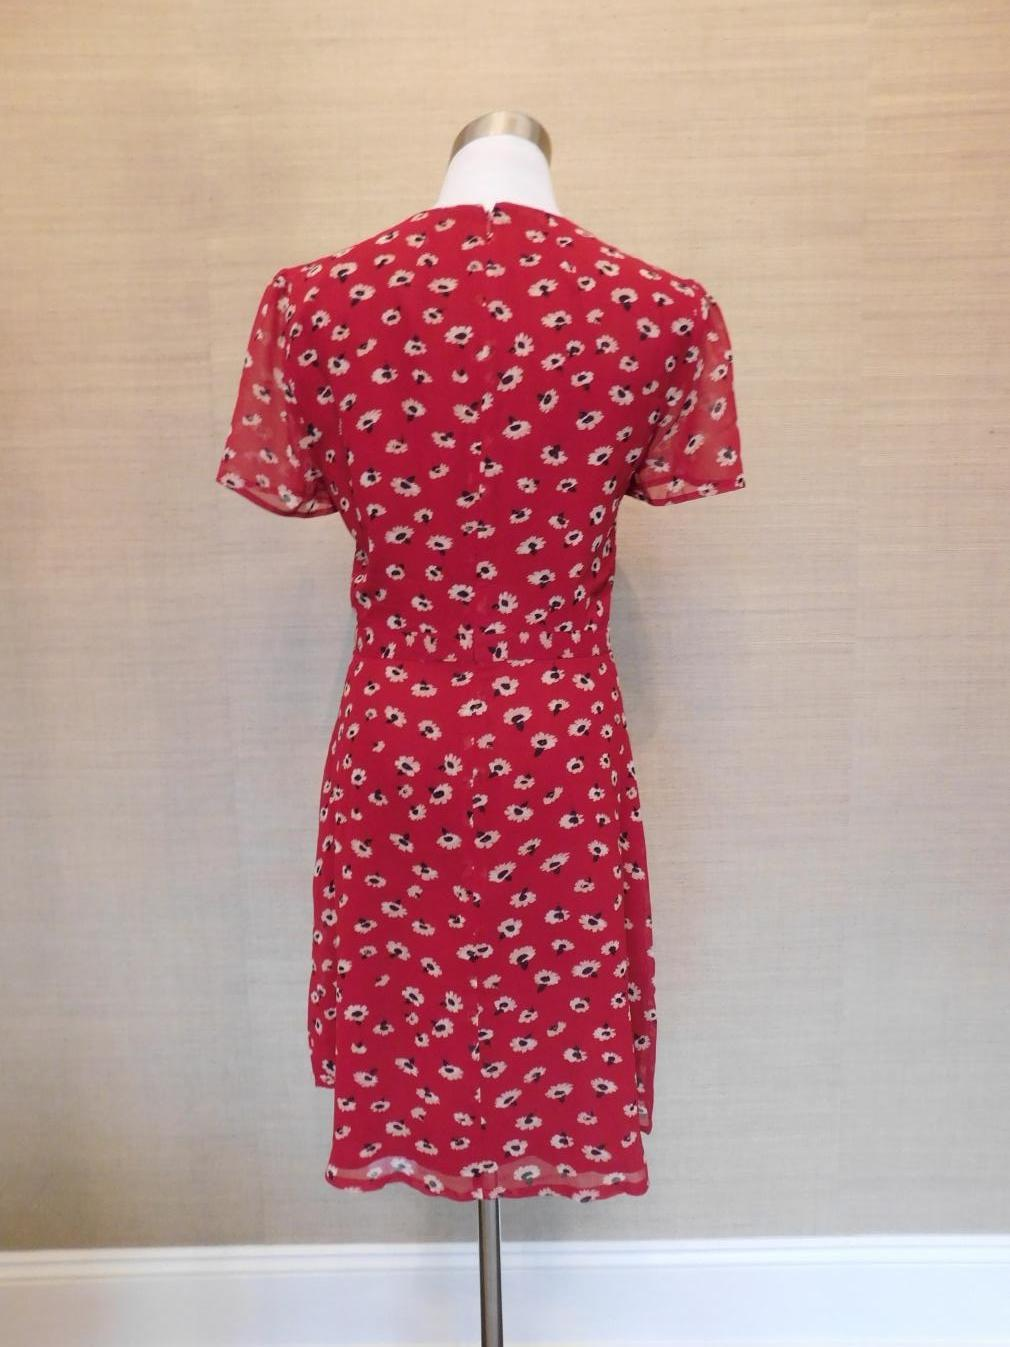 136a1cc657e Details about NEW  148 Madewell Wrap-Front Mini Dress in Seattle Floral  Size 14 G8410  SNAG